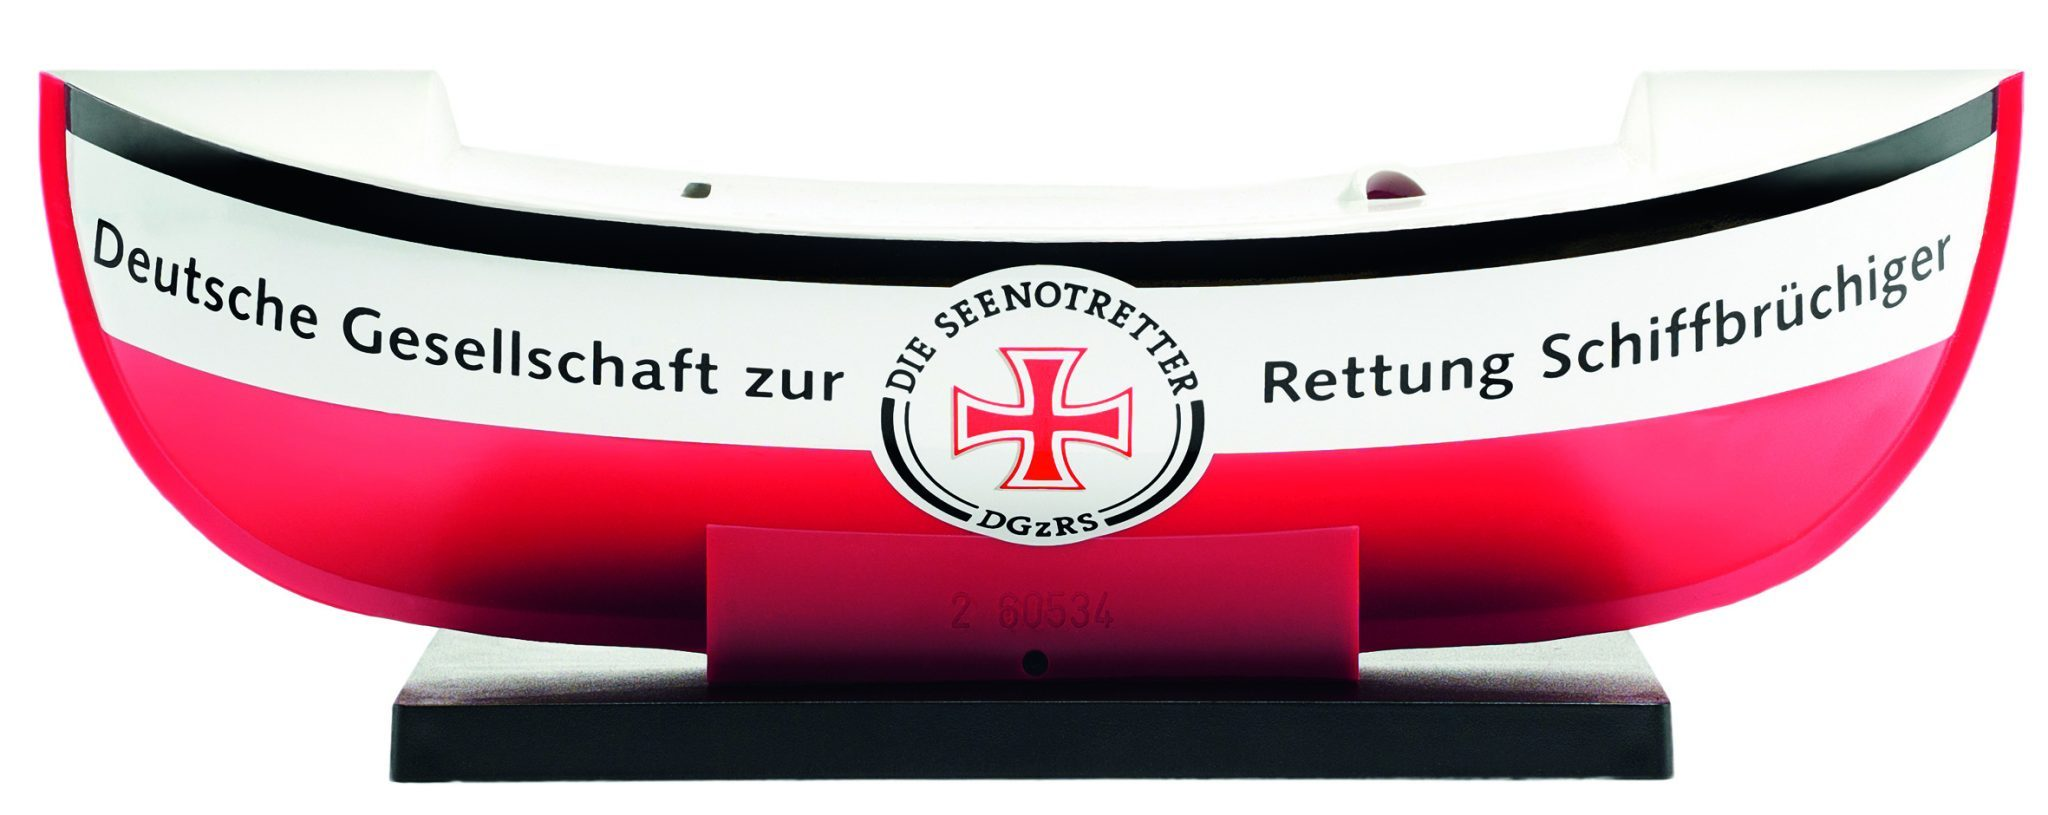 German Maritime Search and Rescue Service